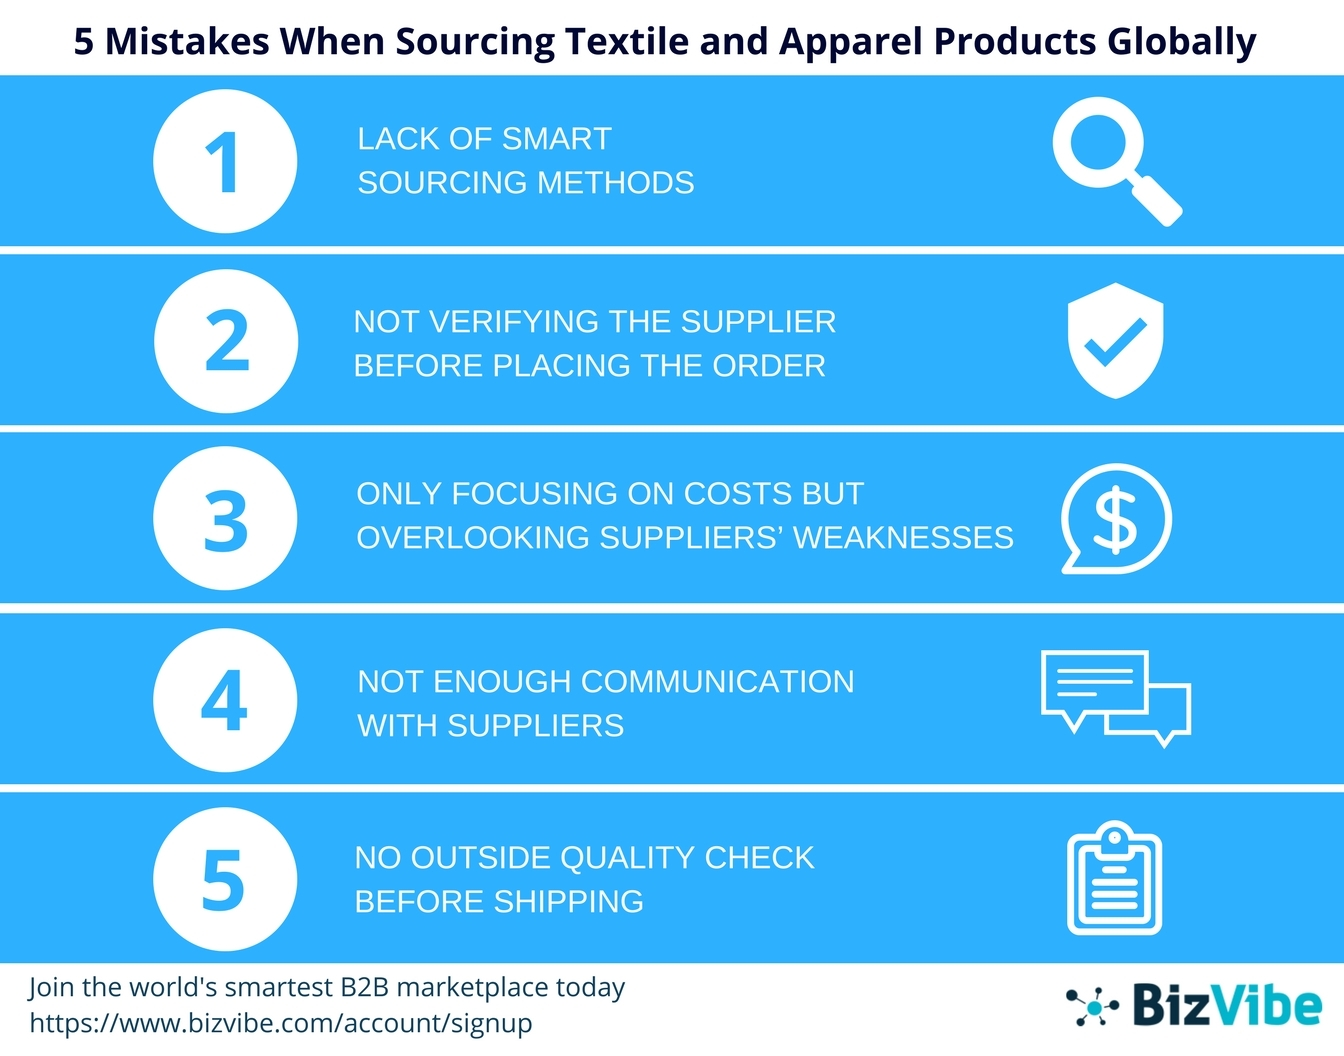 BizVibe's platform aims to provide solutions for common global sourcing problems. (Graphic: Business Wire)